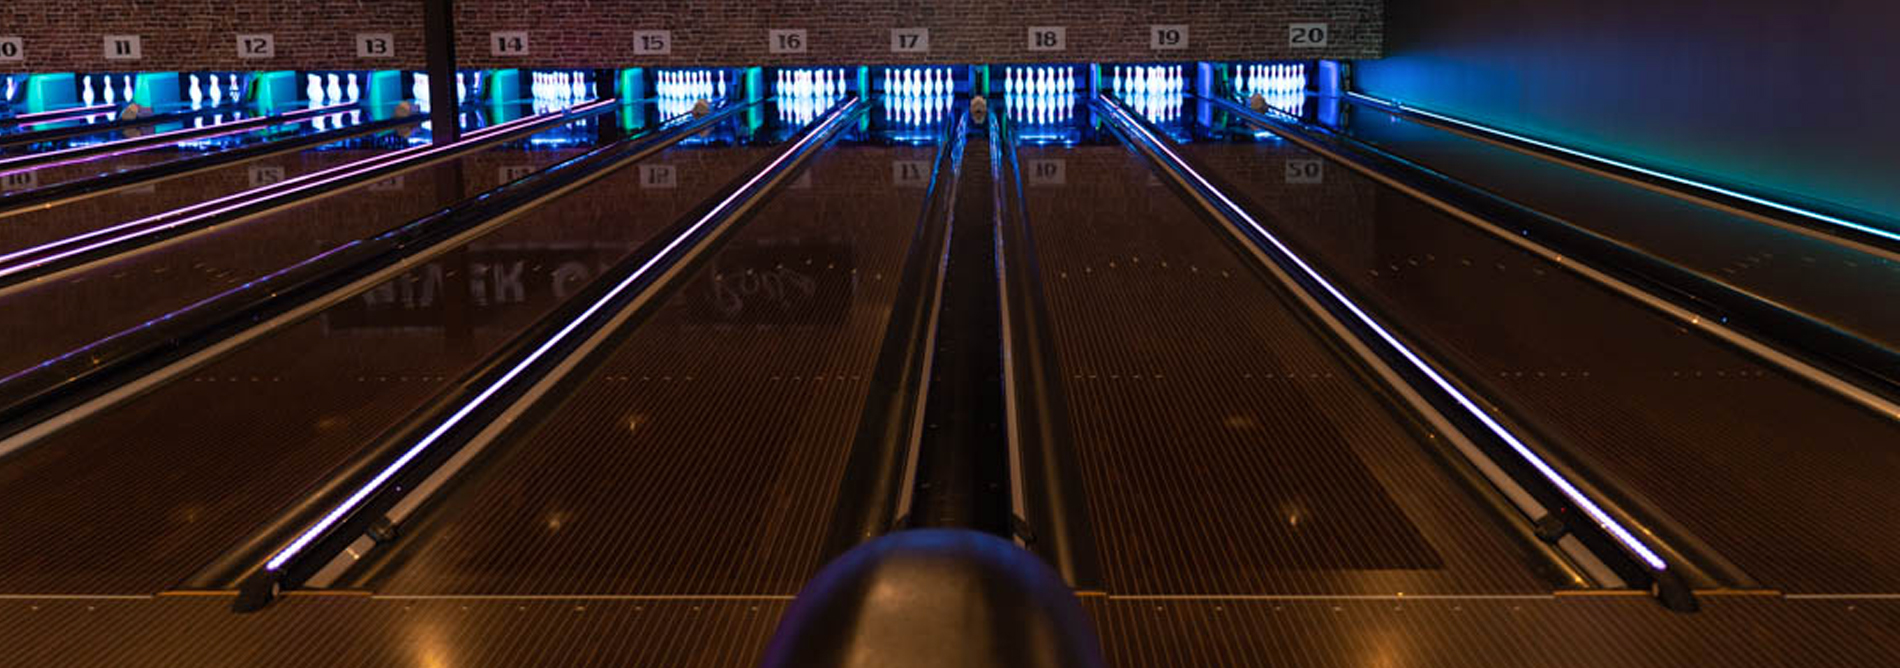 Bowling-QubicaAMF-CAPPING-LIGHTS-Capping-Illumination-built-for-Bowling-banner.jpg